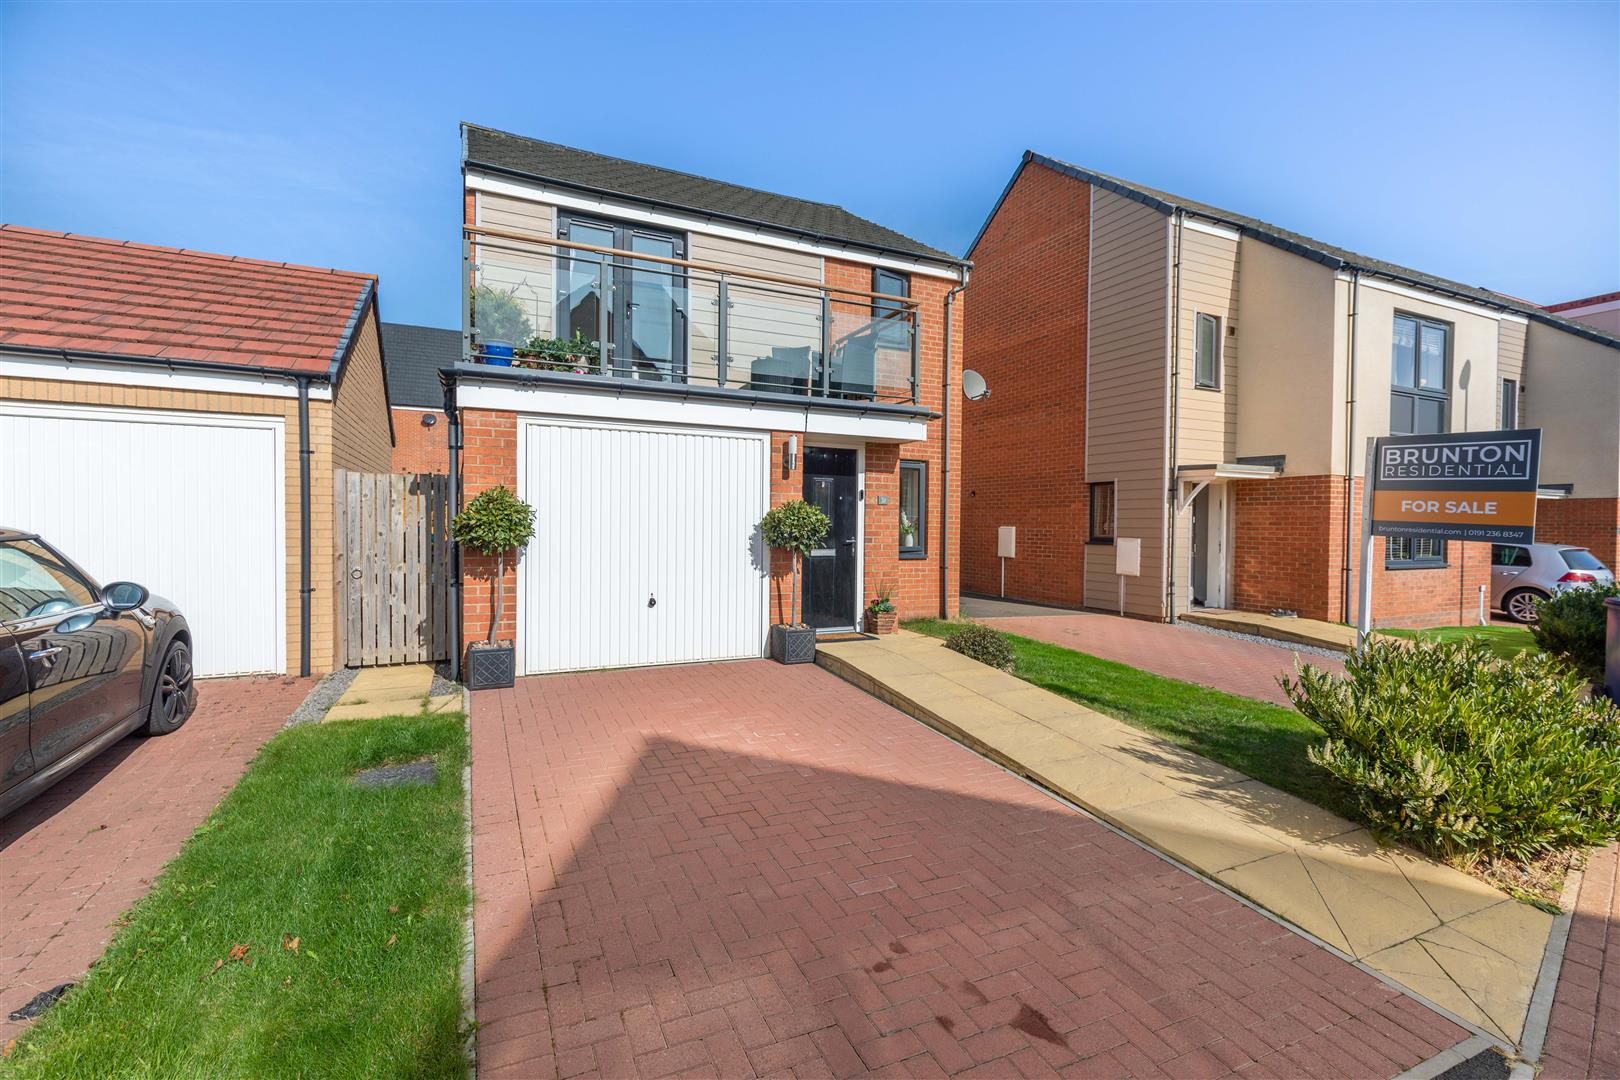 3 bed detached house for sale in Newcastle Upon Tyne, NE13 9DB, NE13